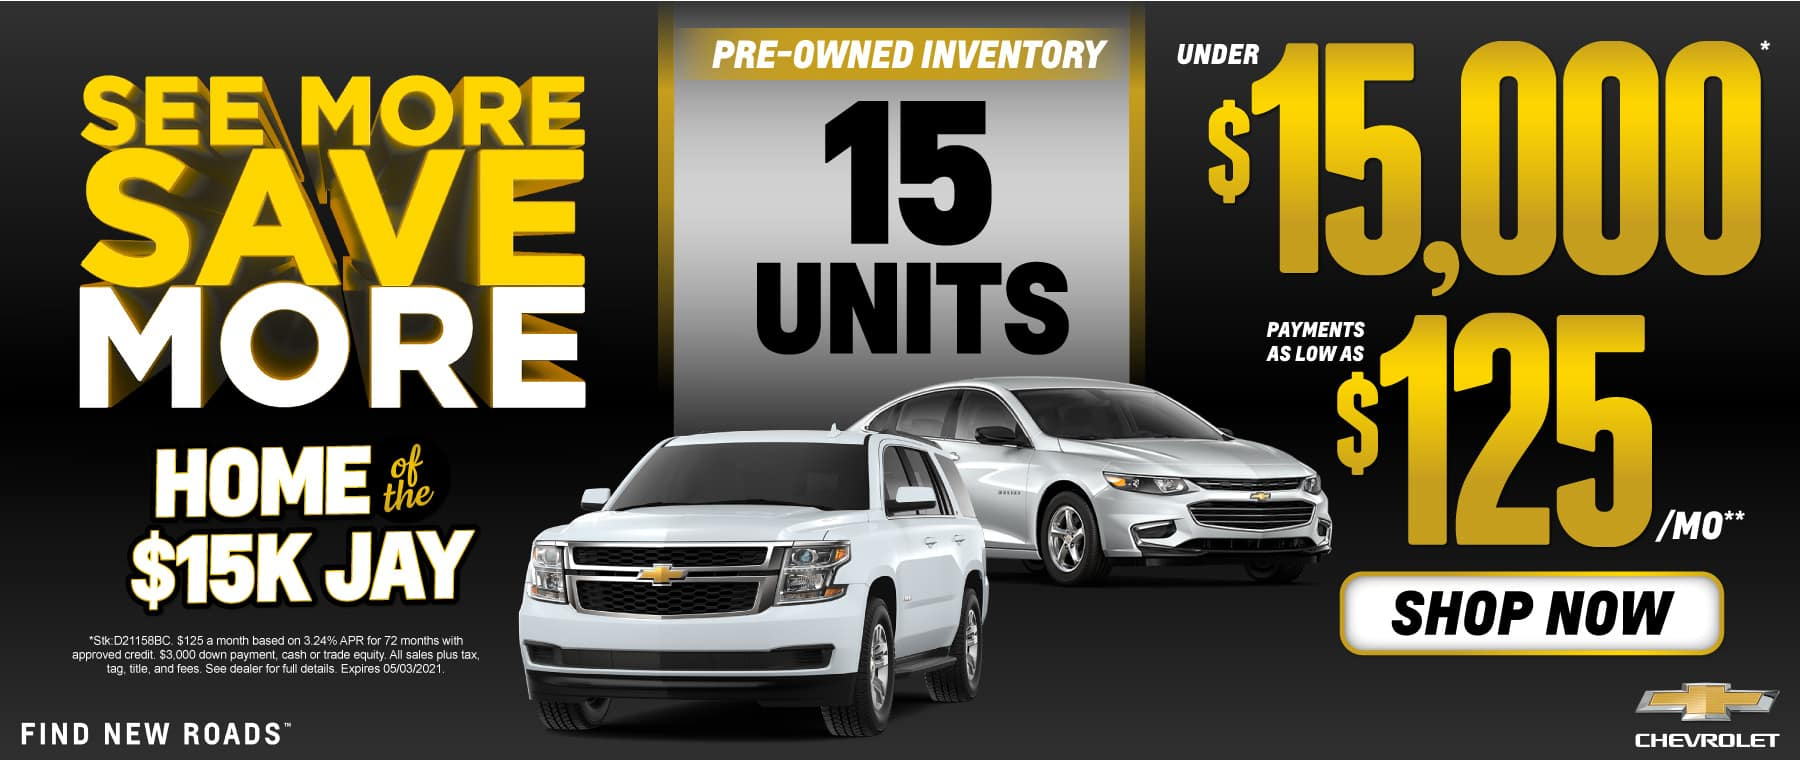 15 Pre-Owned Units under $15,000 - Shop Now